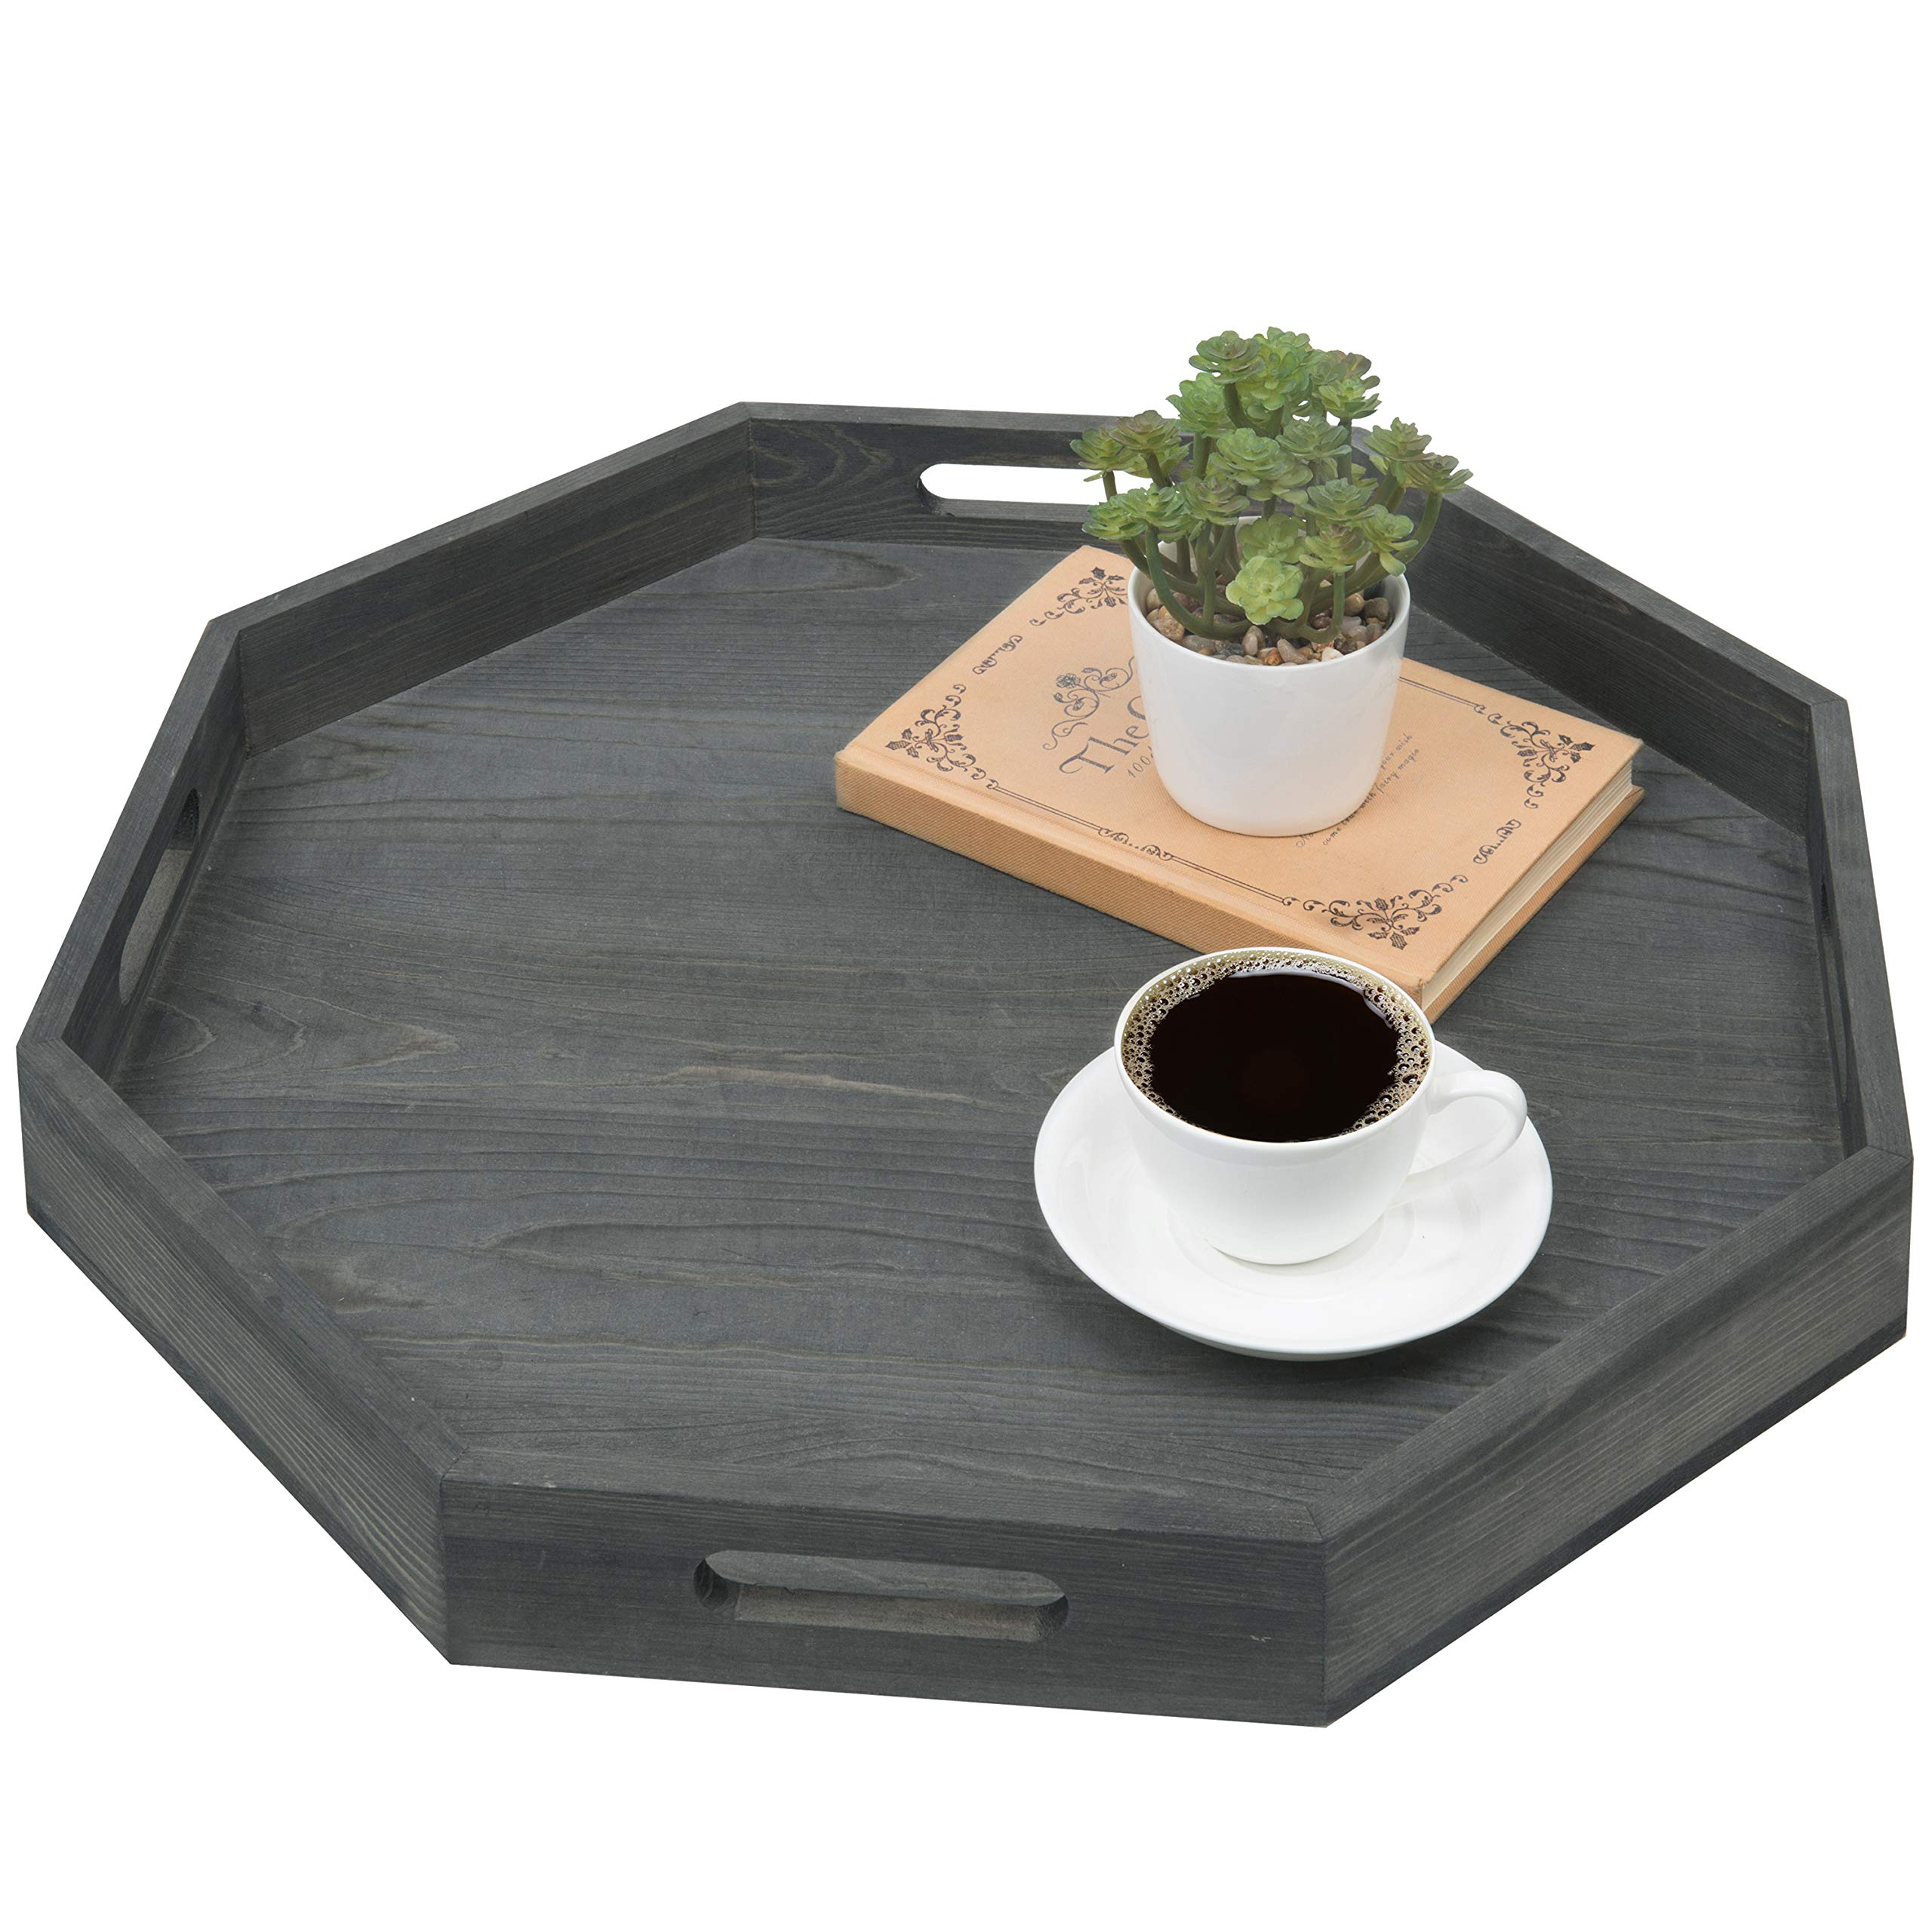 MyGift Vintage Grey Wood Octagonal Serving Tray with Cutout Handles